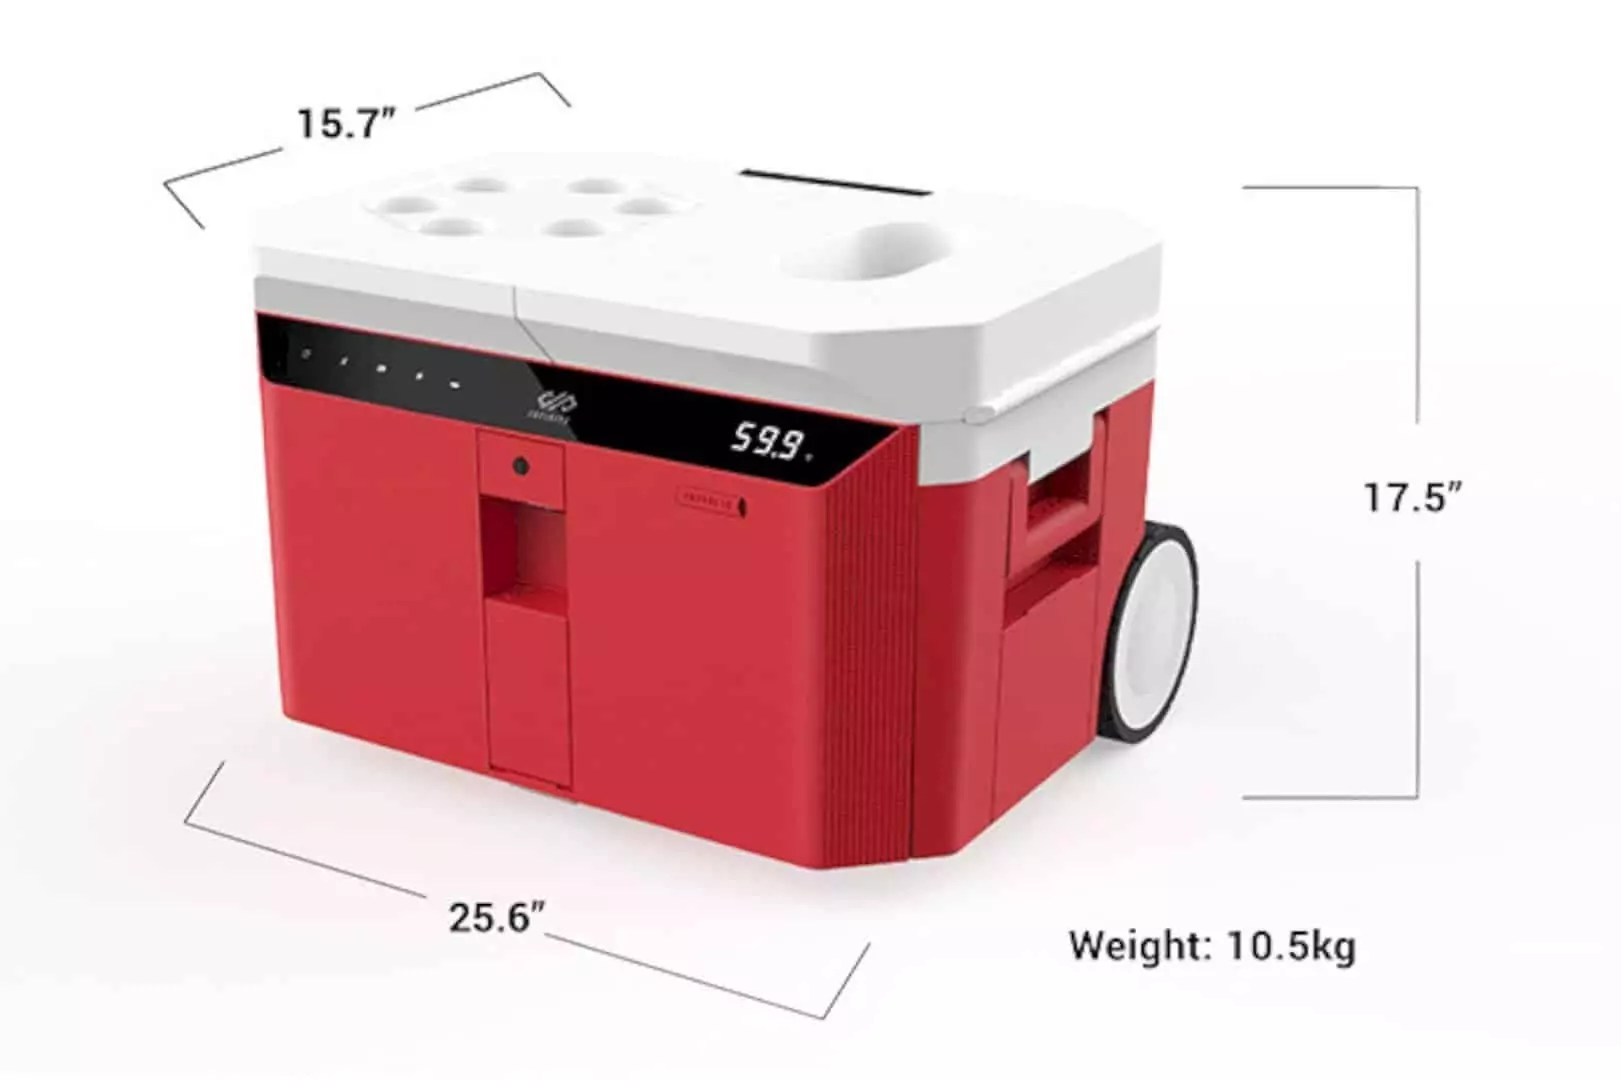 INFINITE: The Smartest Cooler for Any Outdoor Occasion